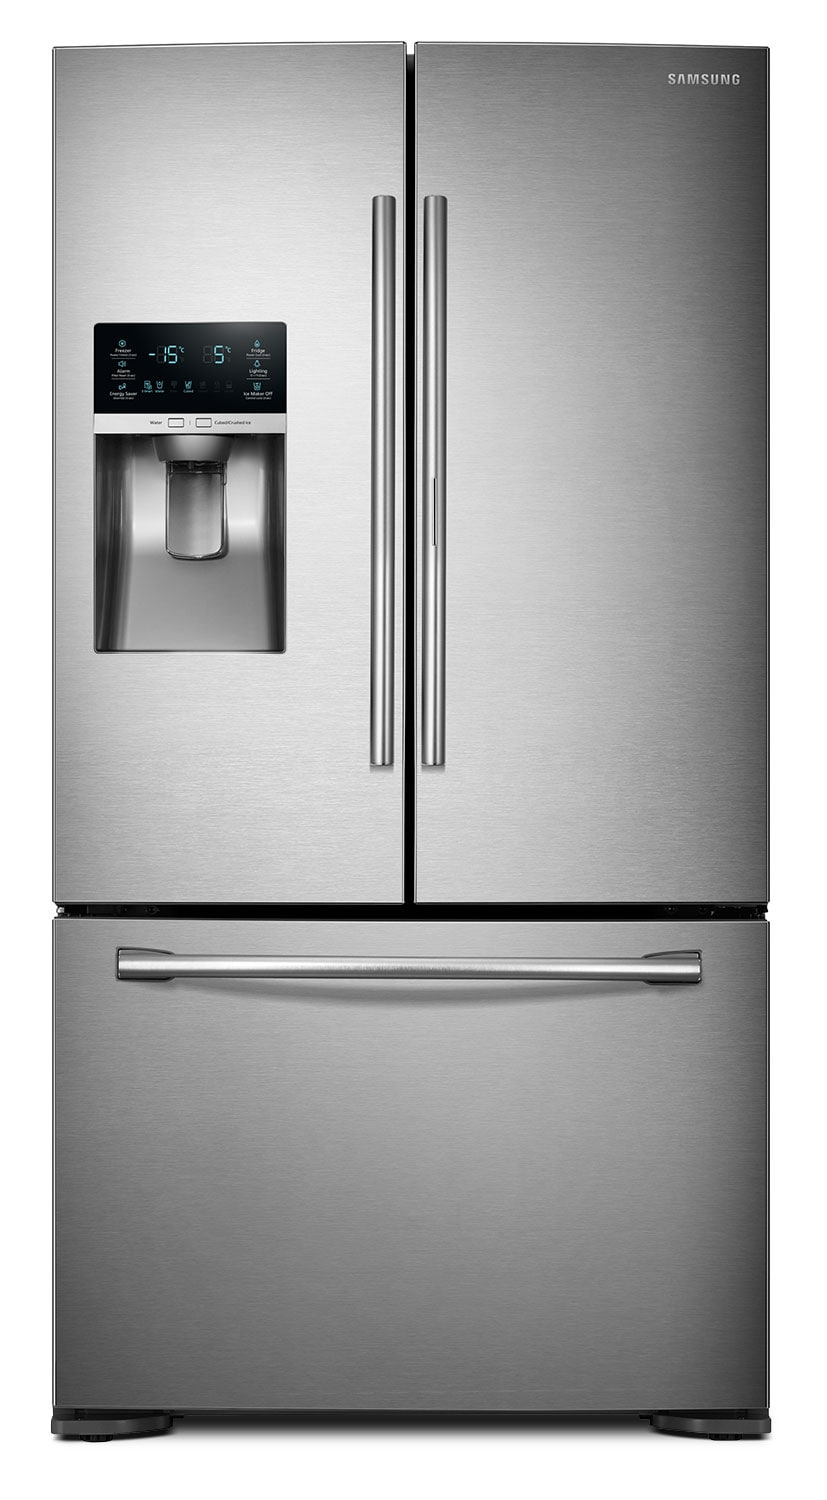 Samsung Stainless Steel Counter-Depth French Door Refrigerator (22.5 Cu. Ft.) - RF23HTEDBSR